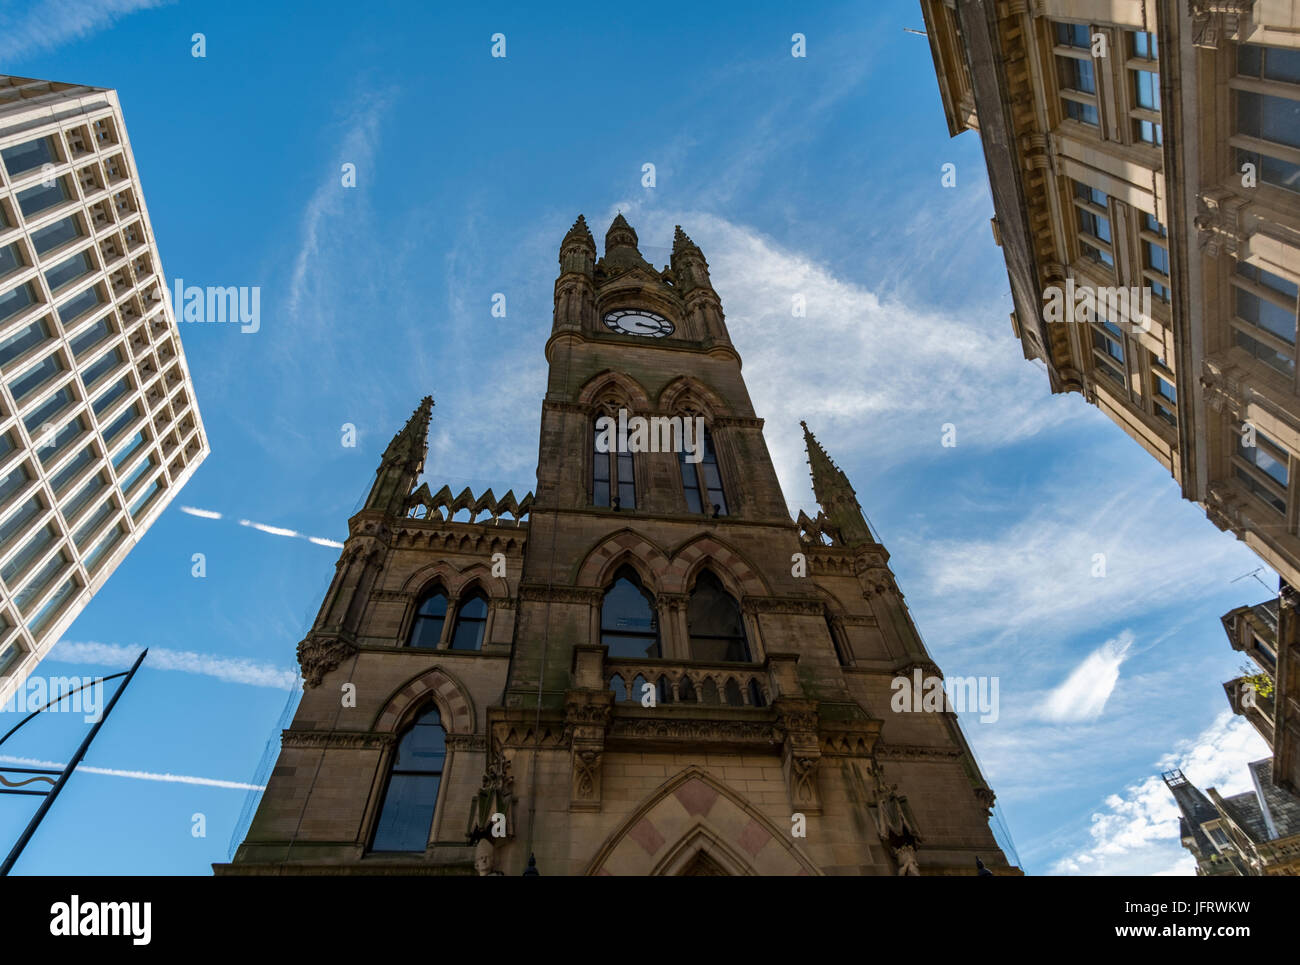 The fabulously ornate Wool Exchange building in the heart of Bradford City Centre, West Yorkshire, UK, now the home - Stock Image